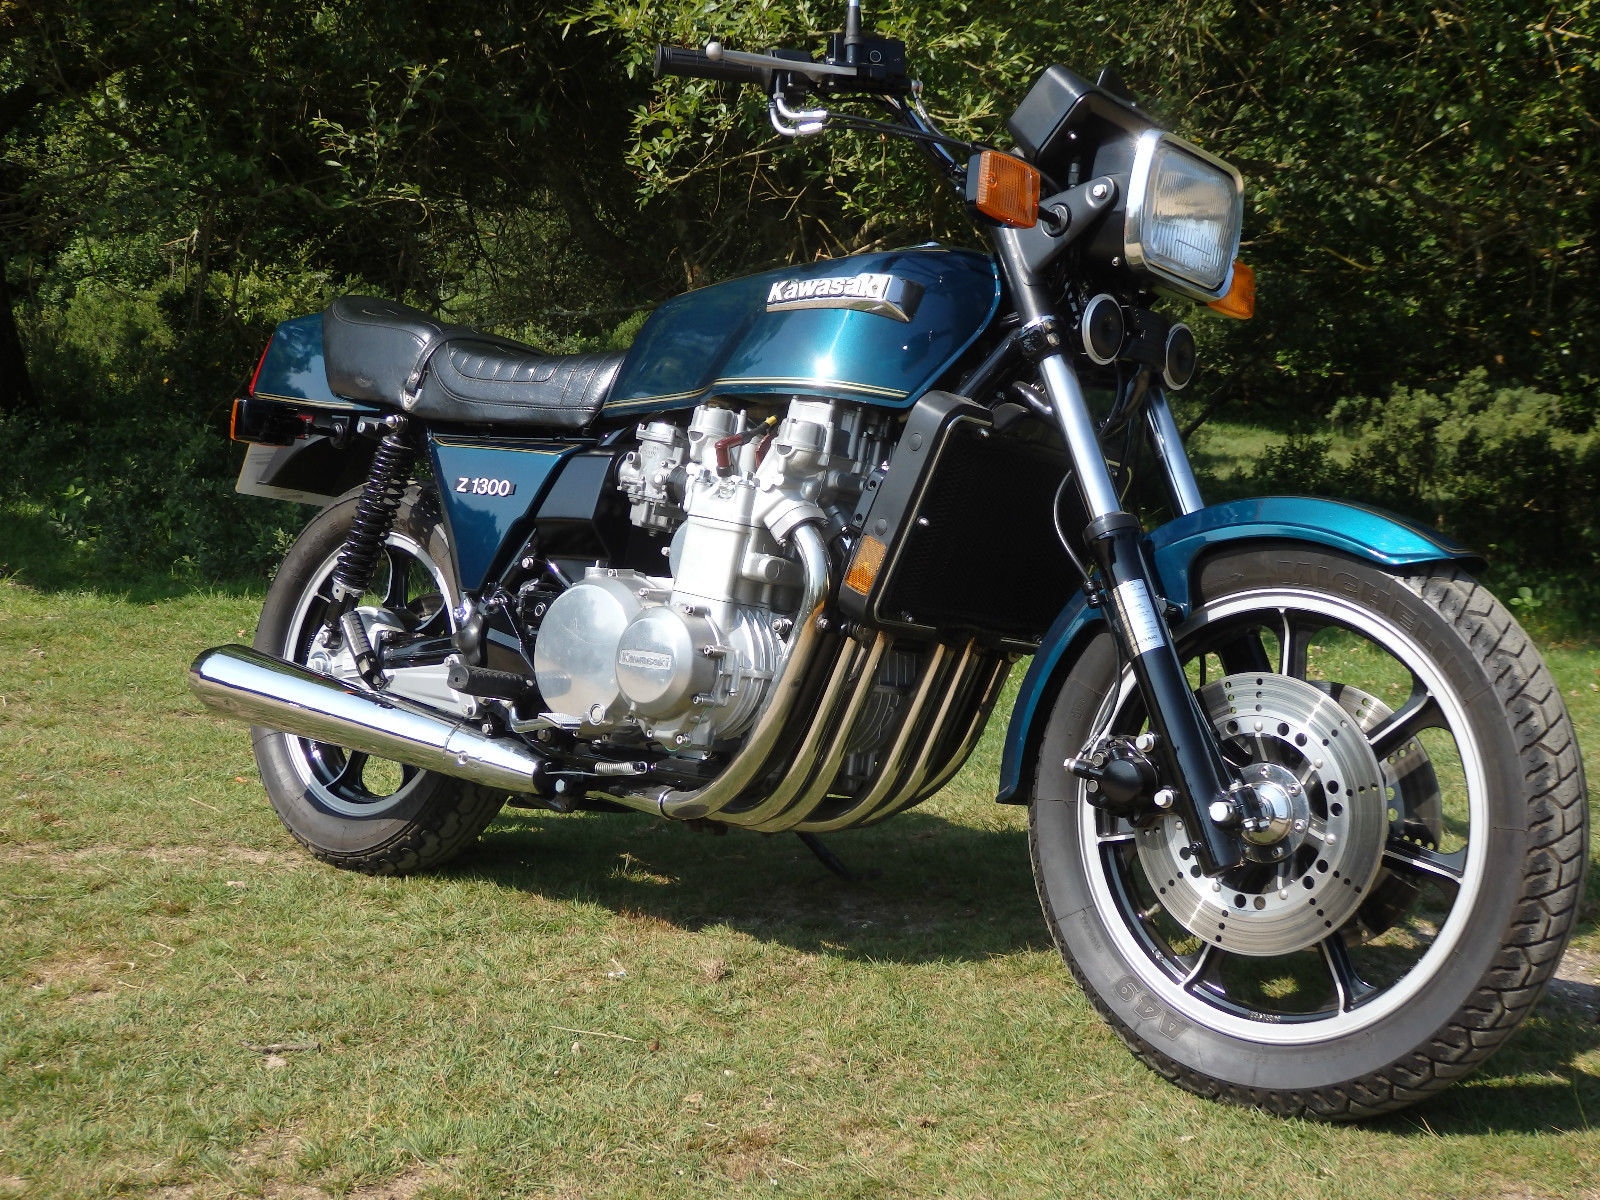 Restored Kawasaki Kz1300 1979 Photographs At Classic